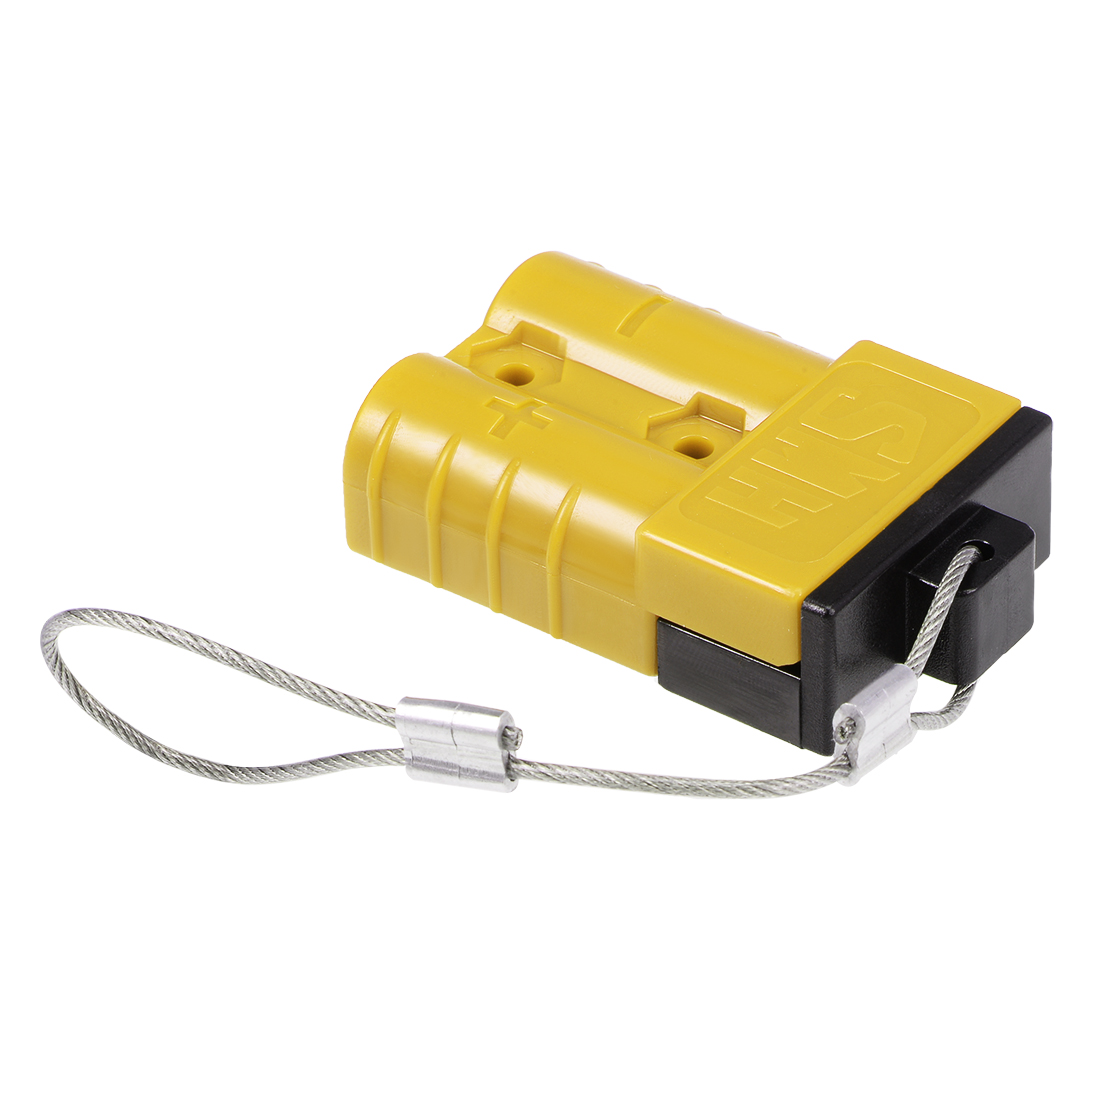 6 Gauge Battery Quick Connect Disconnect Kit 50A Wire Harness Connector, Yellow